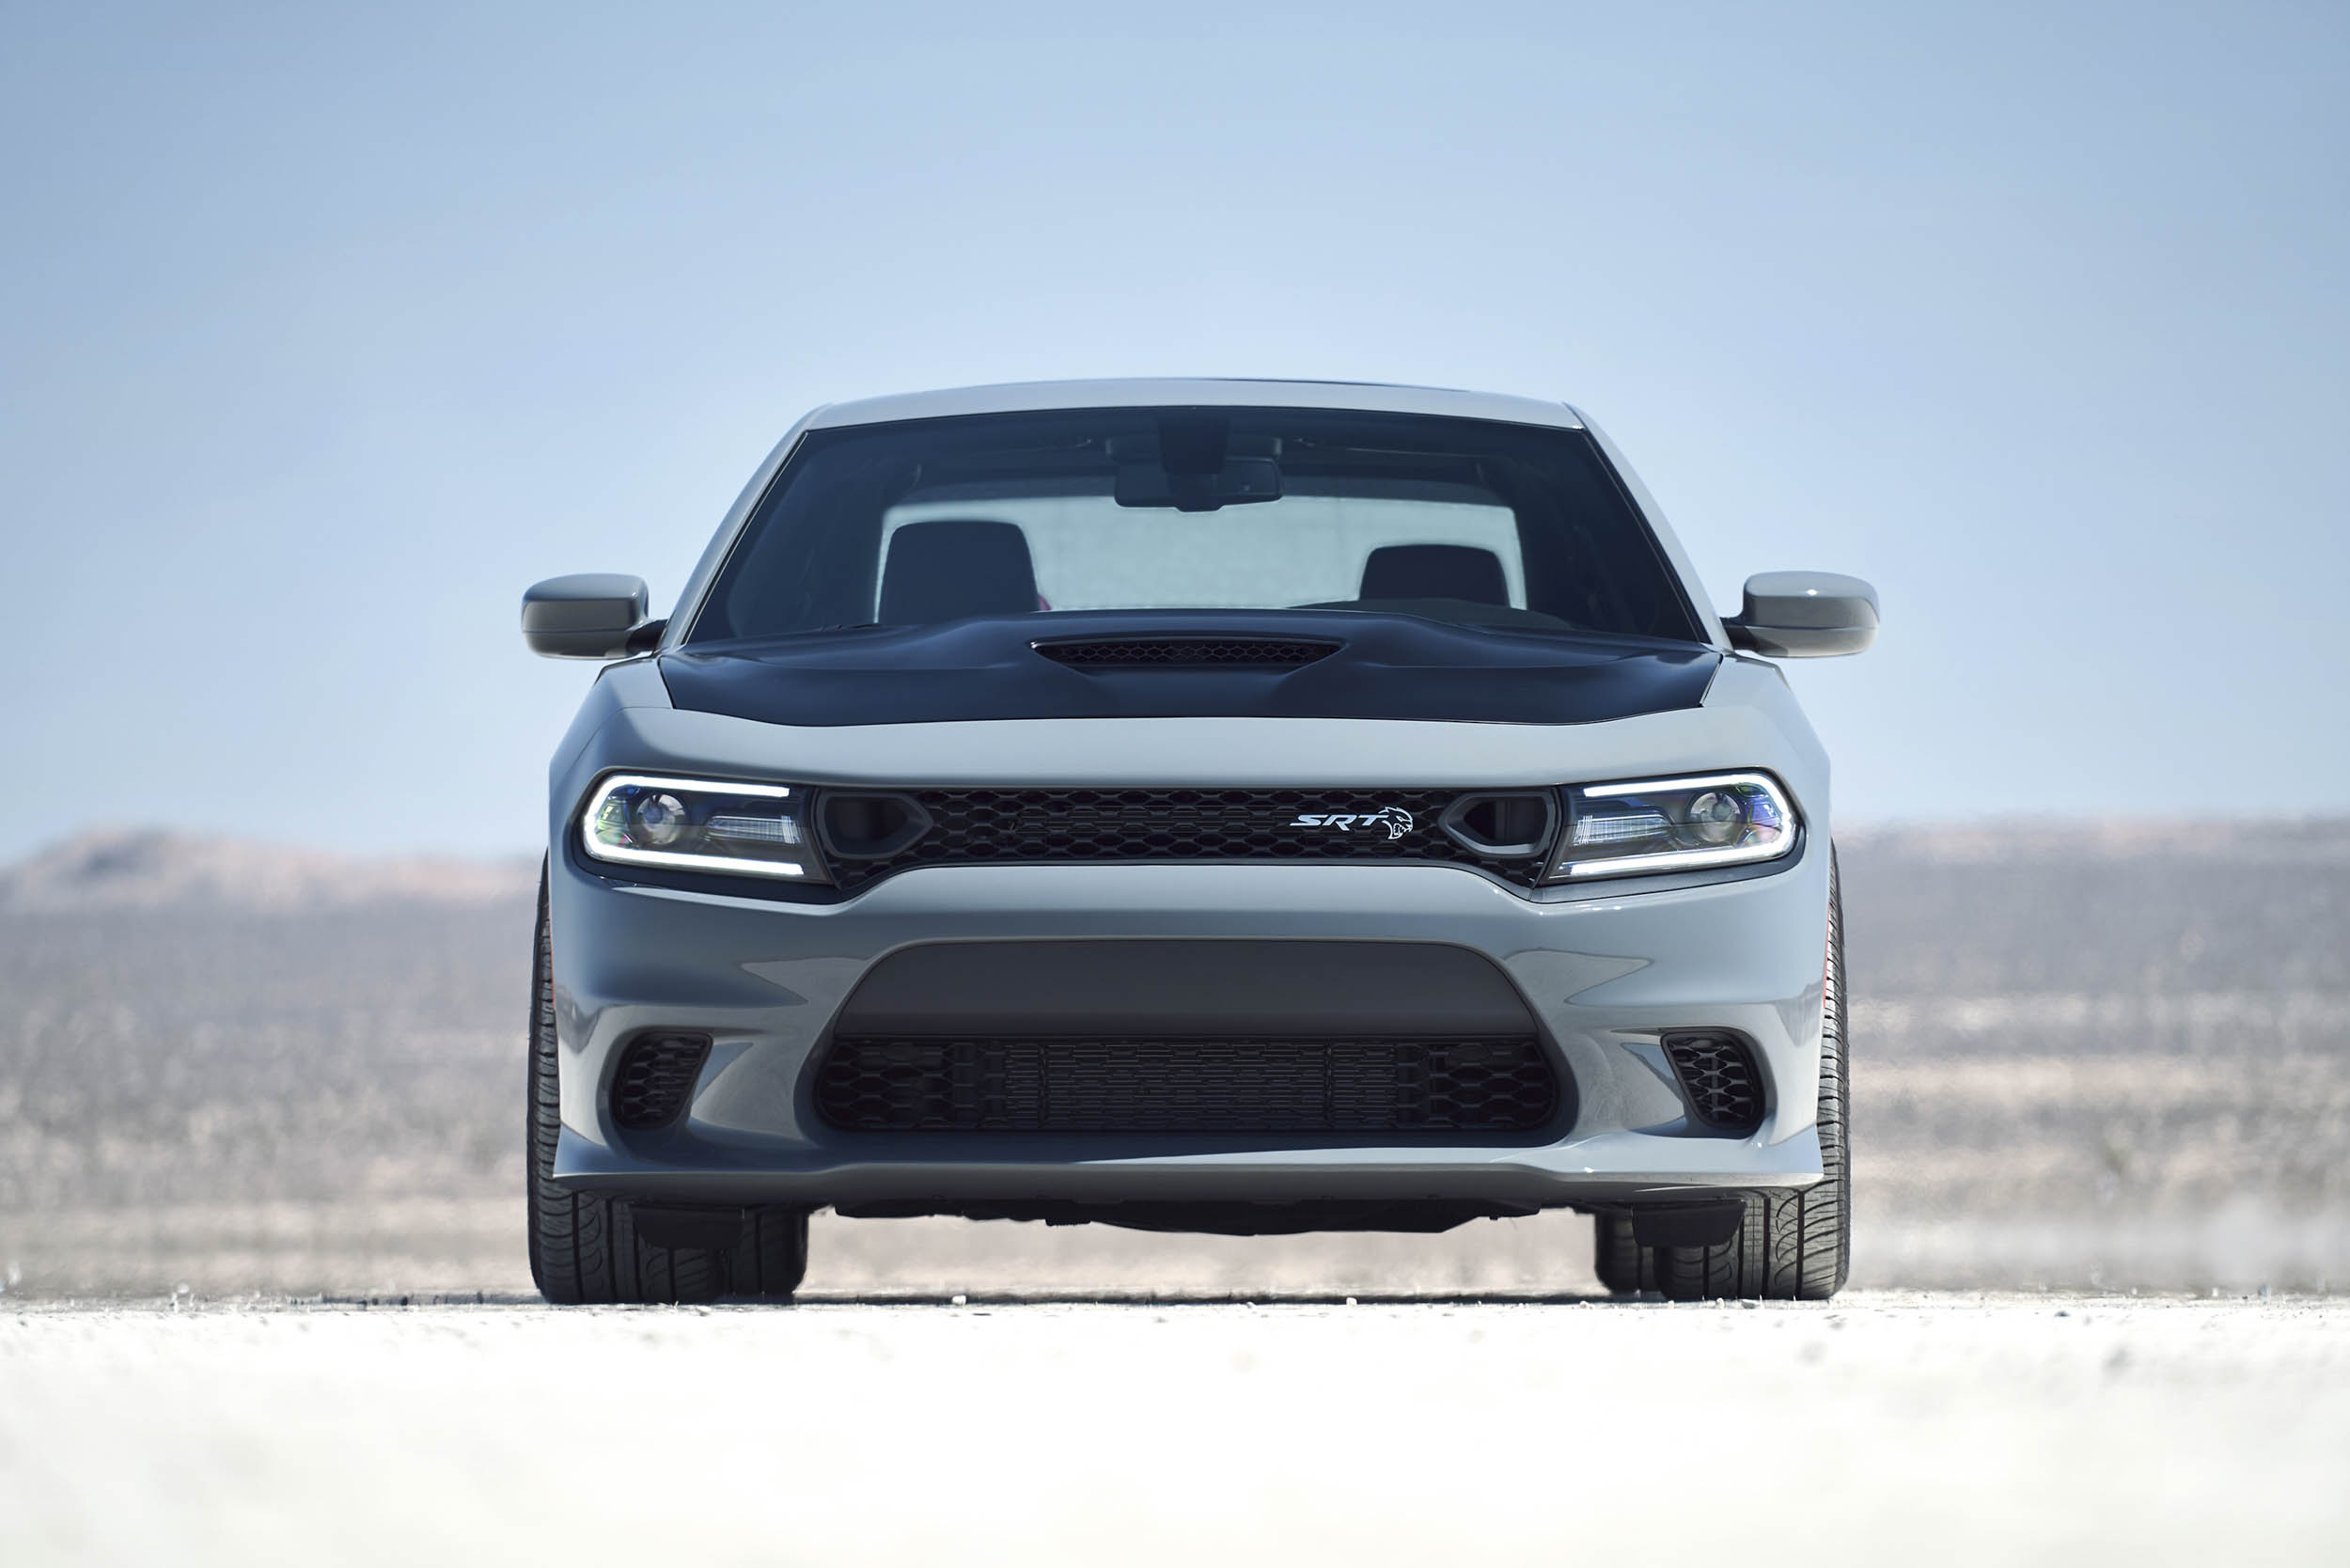 2019 Dodge Charger SRT Hellcat featuring new performance grille with dual air inlets and newly available Satin Black painted hood